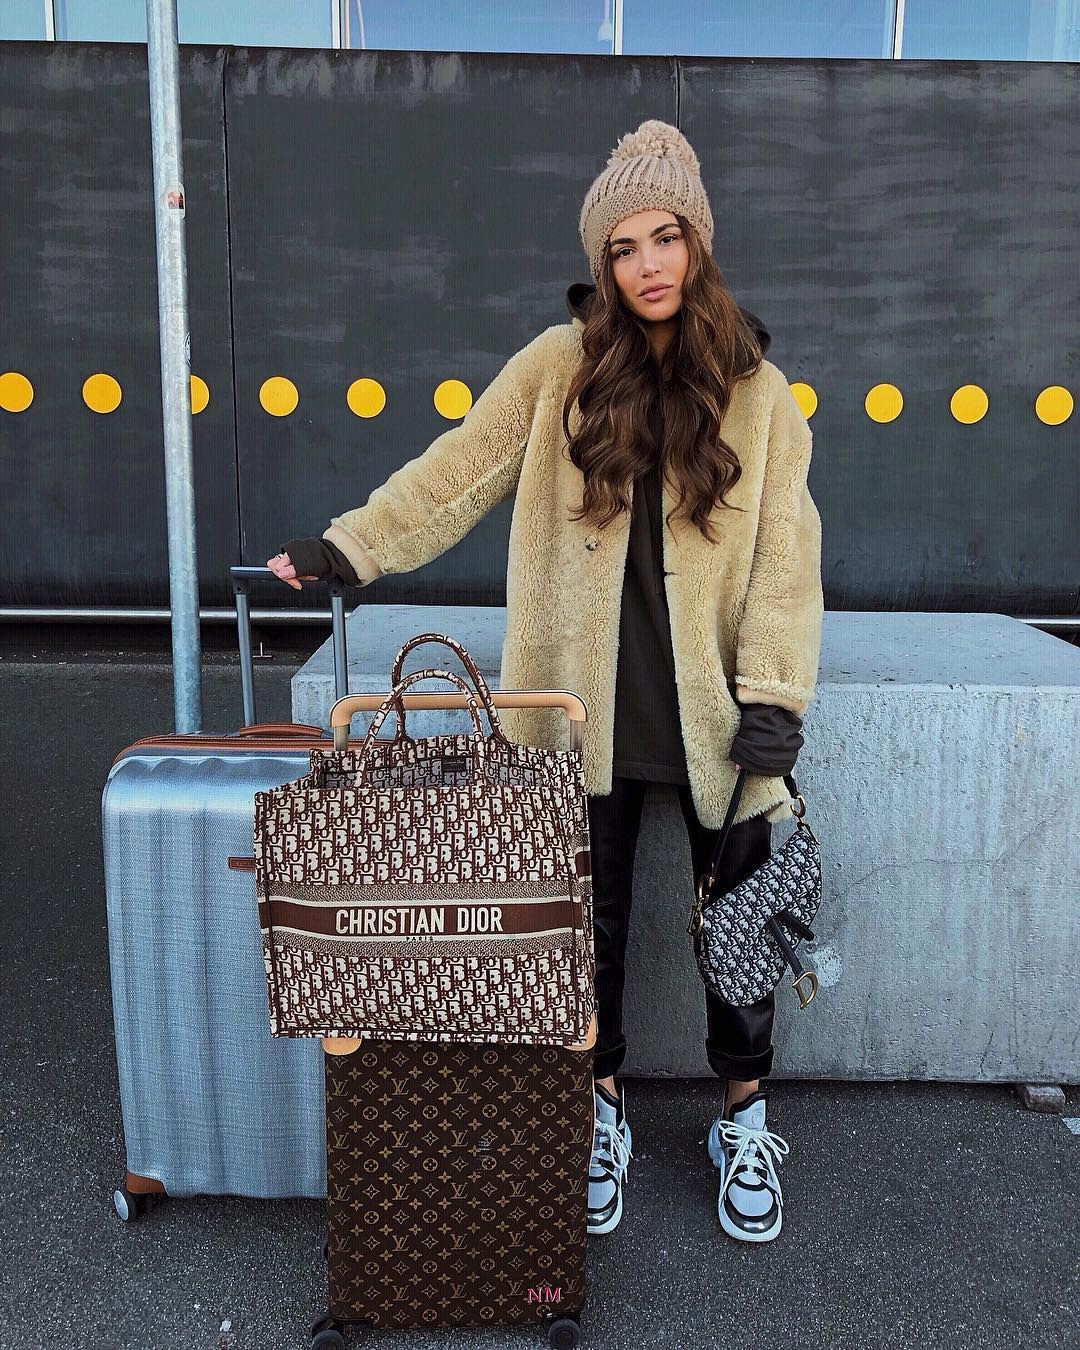 Colour combination negin mirsalehi airport, fashion accessory, negin mirsalehi, street fashion,  ...